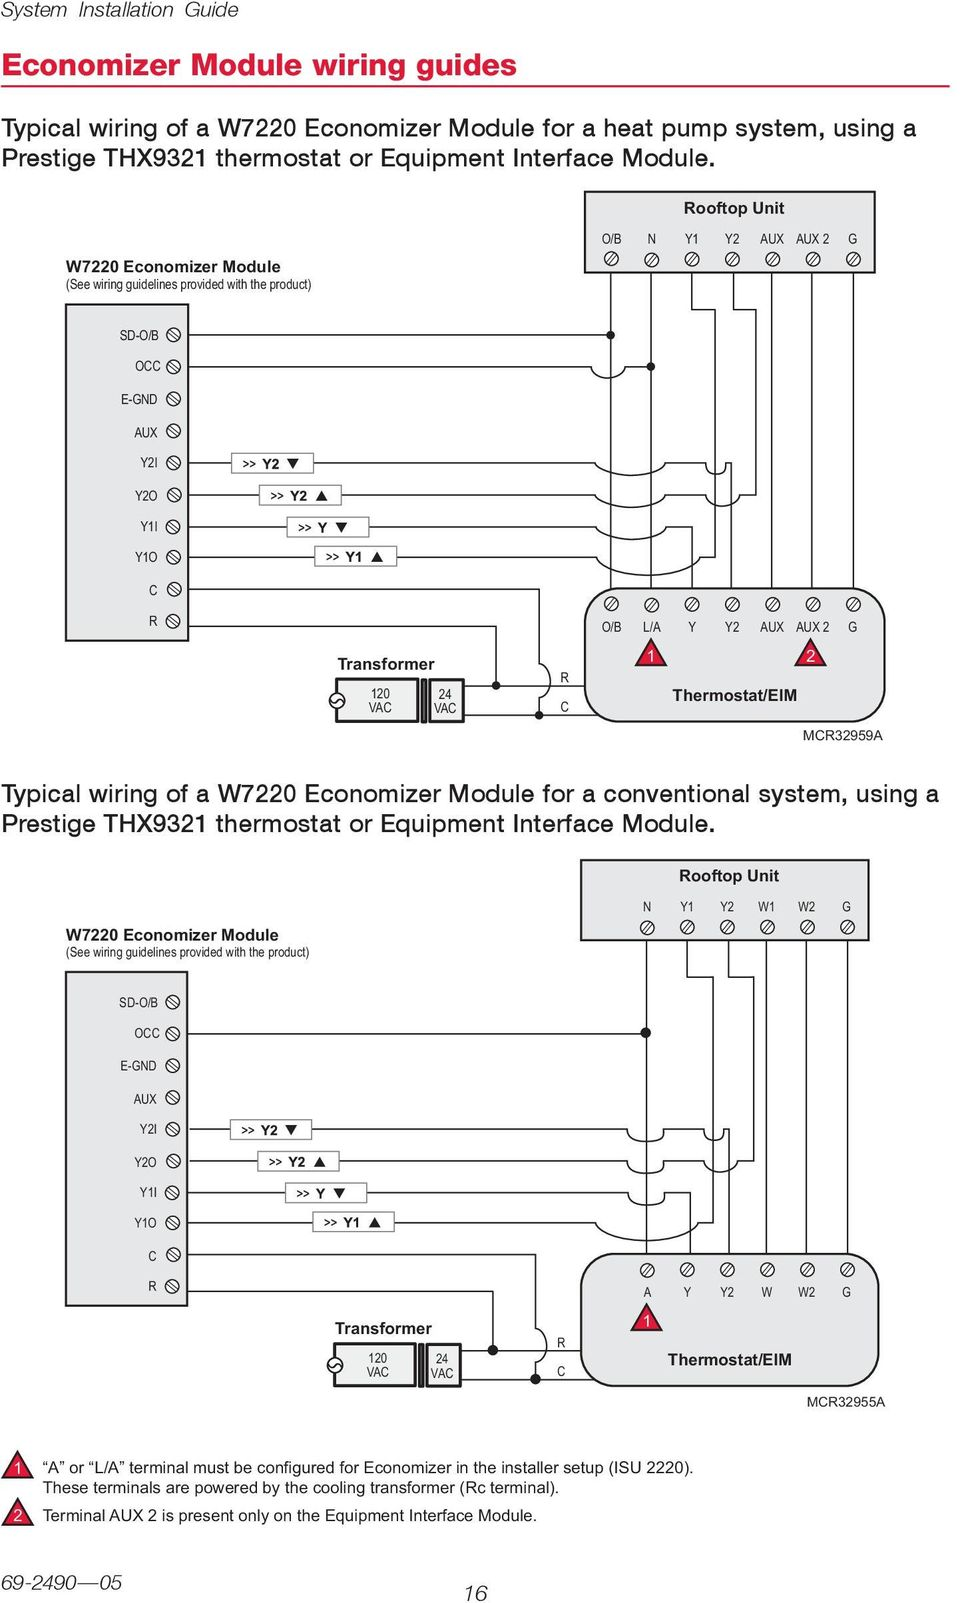 Thx9321 Prestige 20 Thx9421 Iaq With Eim Pdf Carrier Economizer Wiring Diagram Of A W70 Module For Conventional System Using Thx9 Thermostat